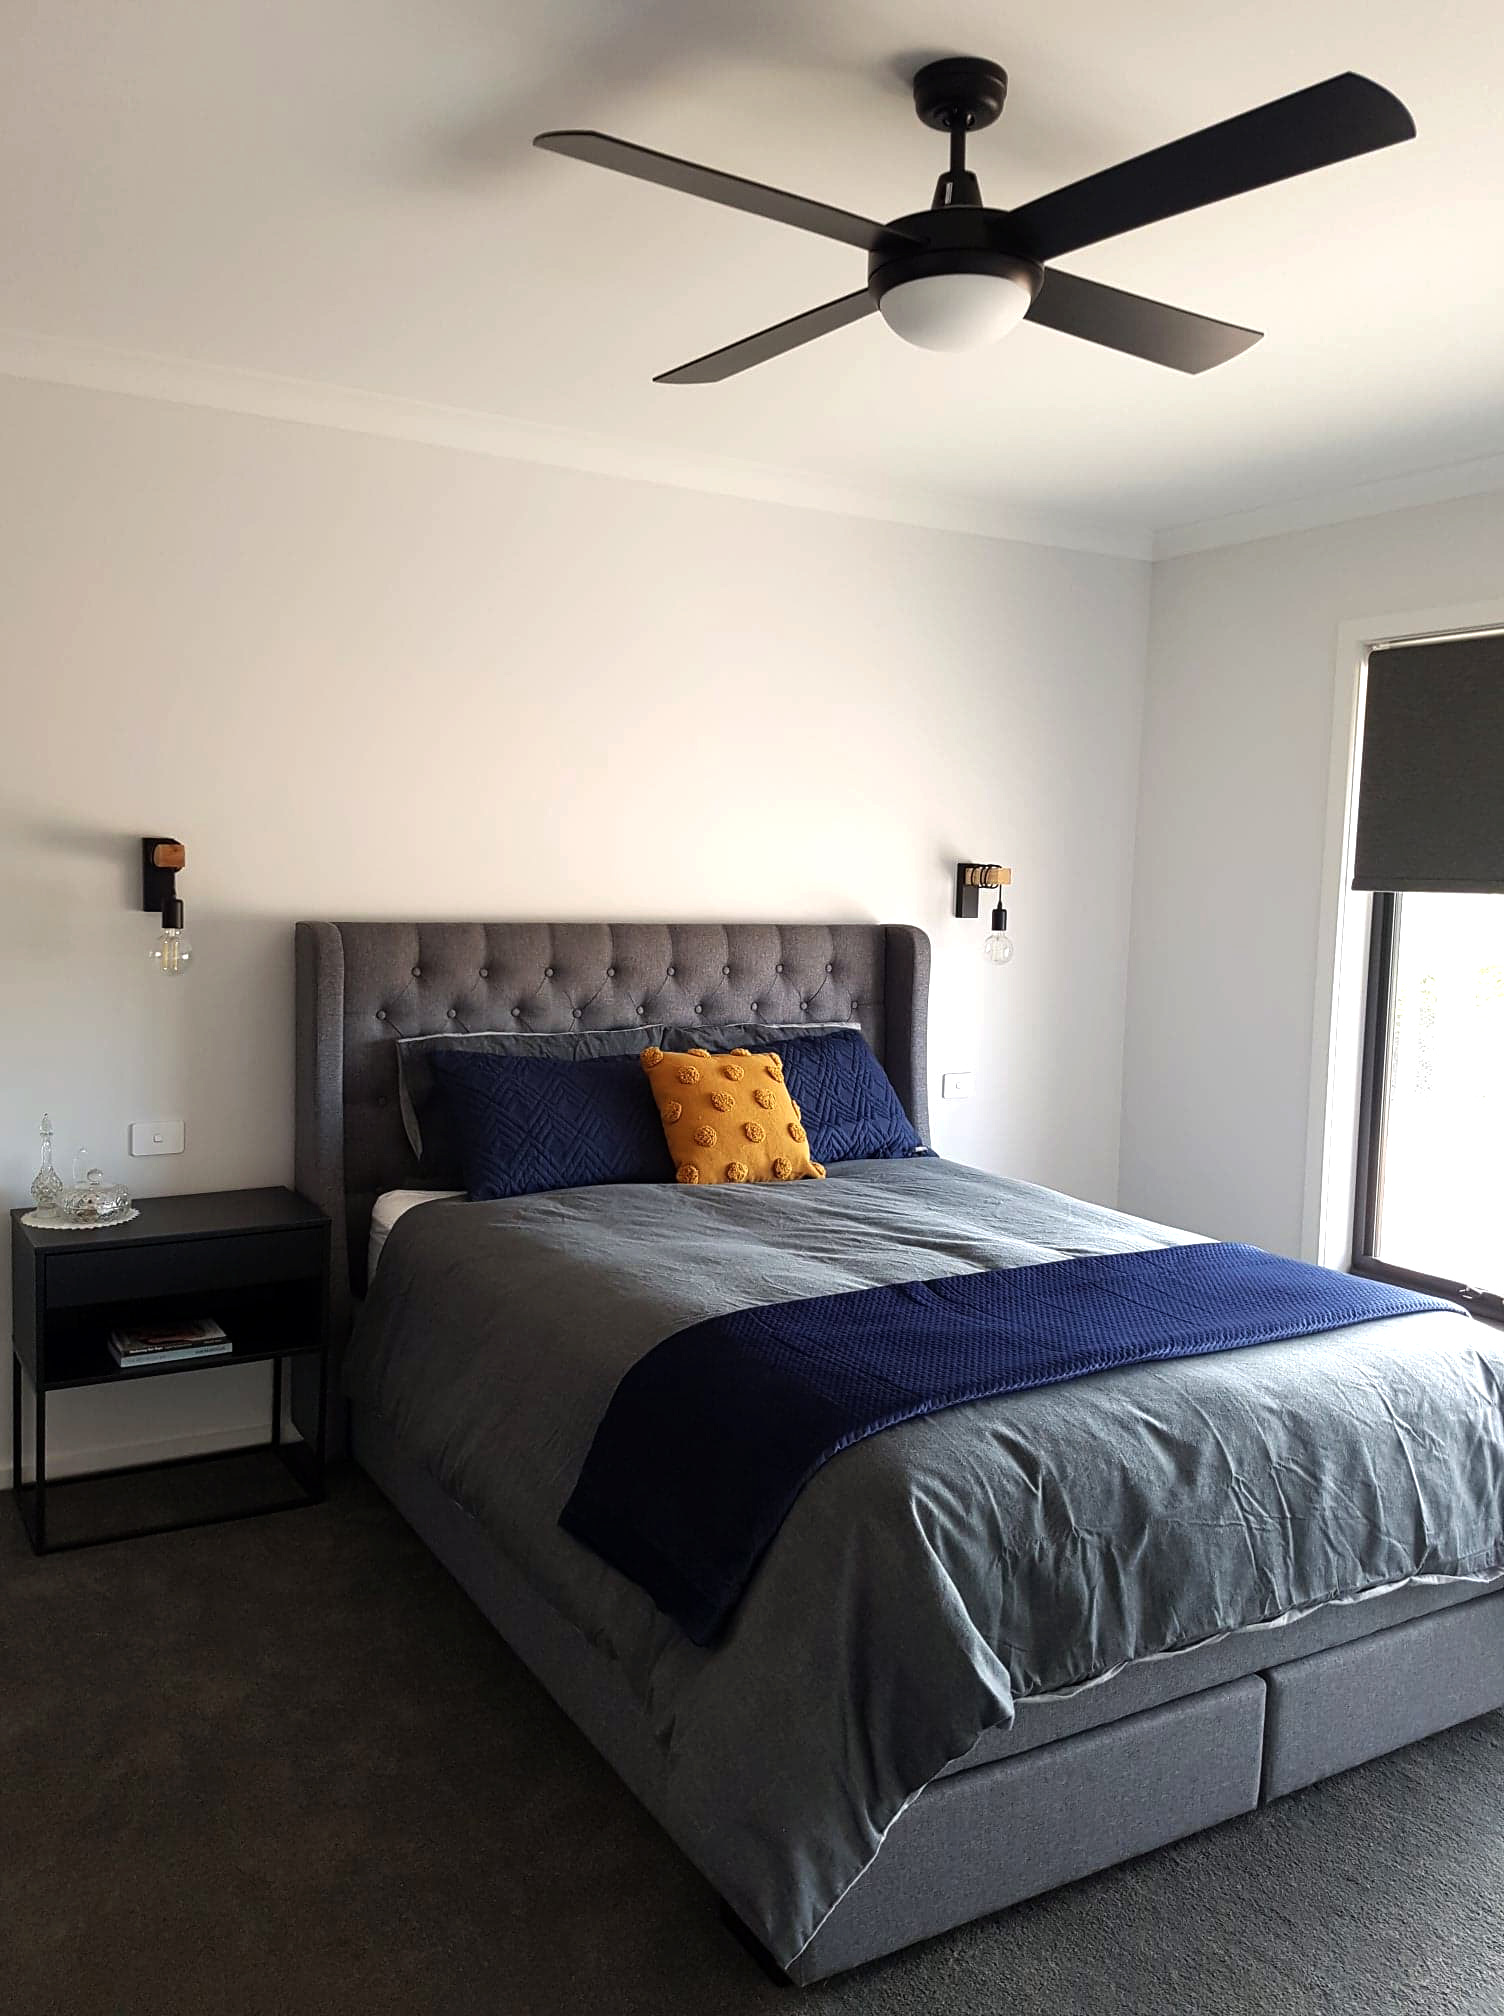 BEDROOM - FAN AND WALL LIGHTS